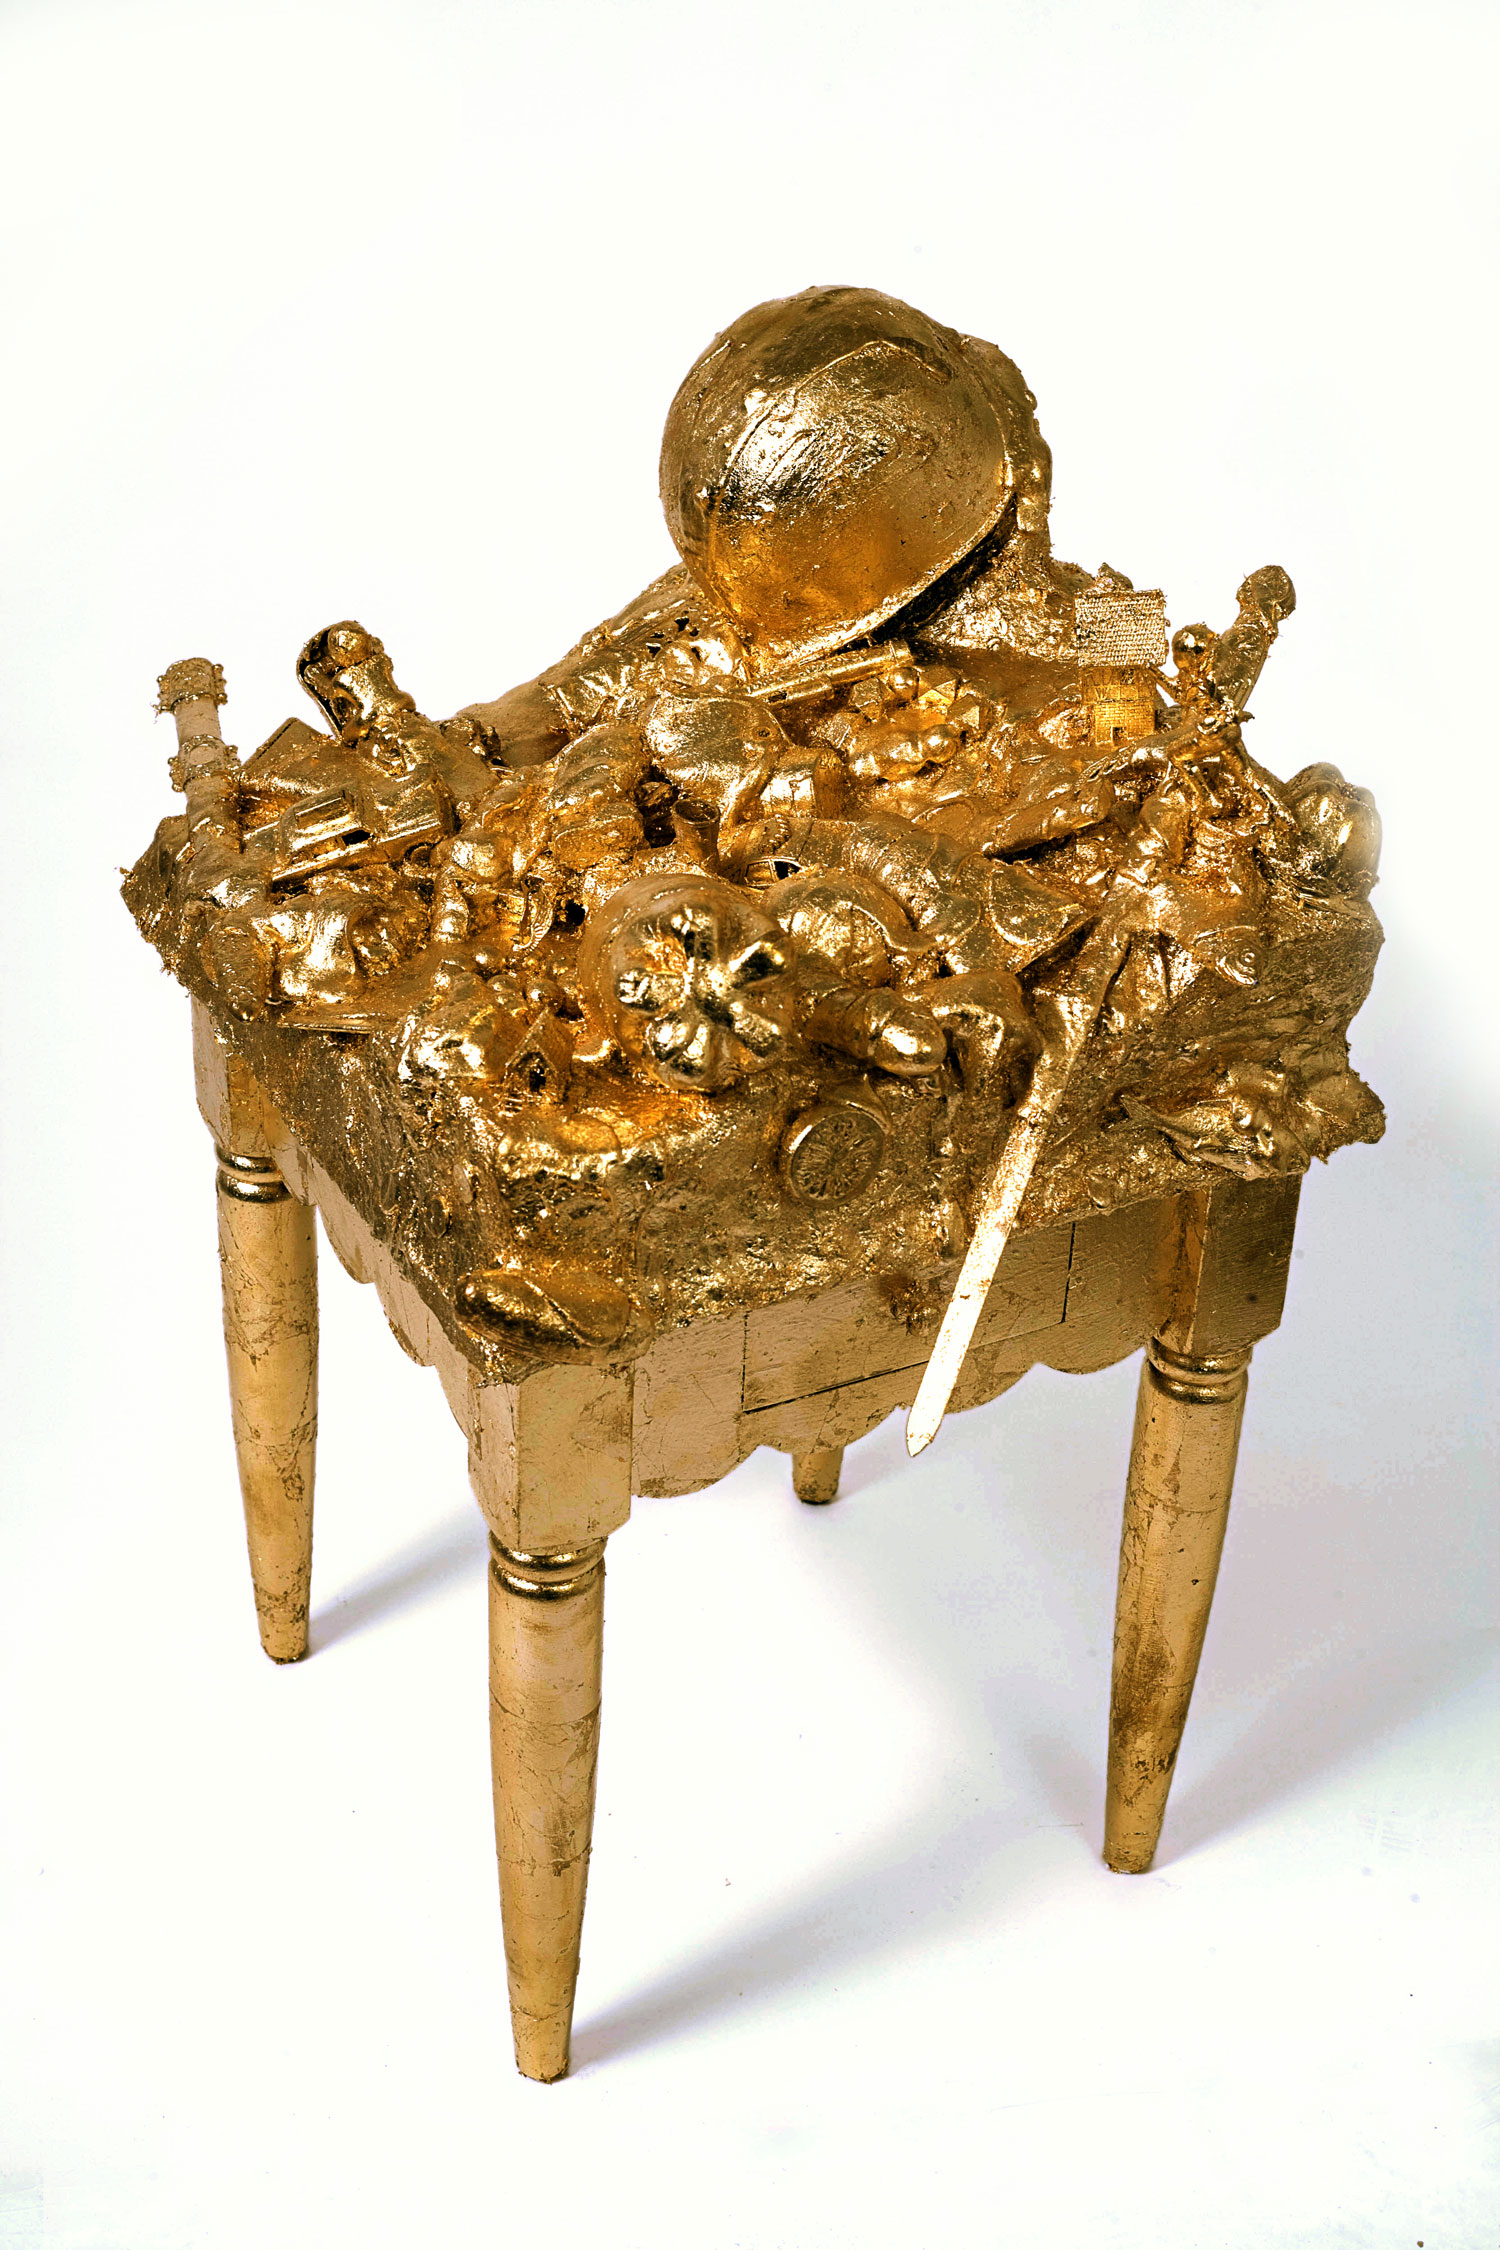 JOHN MILLER  VERLIEBT IN BERLIN, 2007 Gold leaf, plaster, paper maché, styrofoam, plastic objects on table 91.4 x 76.2 x 50.8 cm Courtesy of the artist and Galerie Barbara Weiss, Berlin